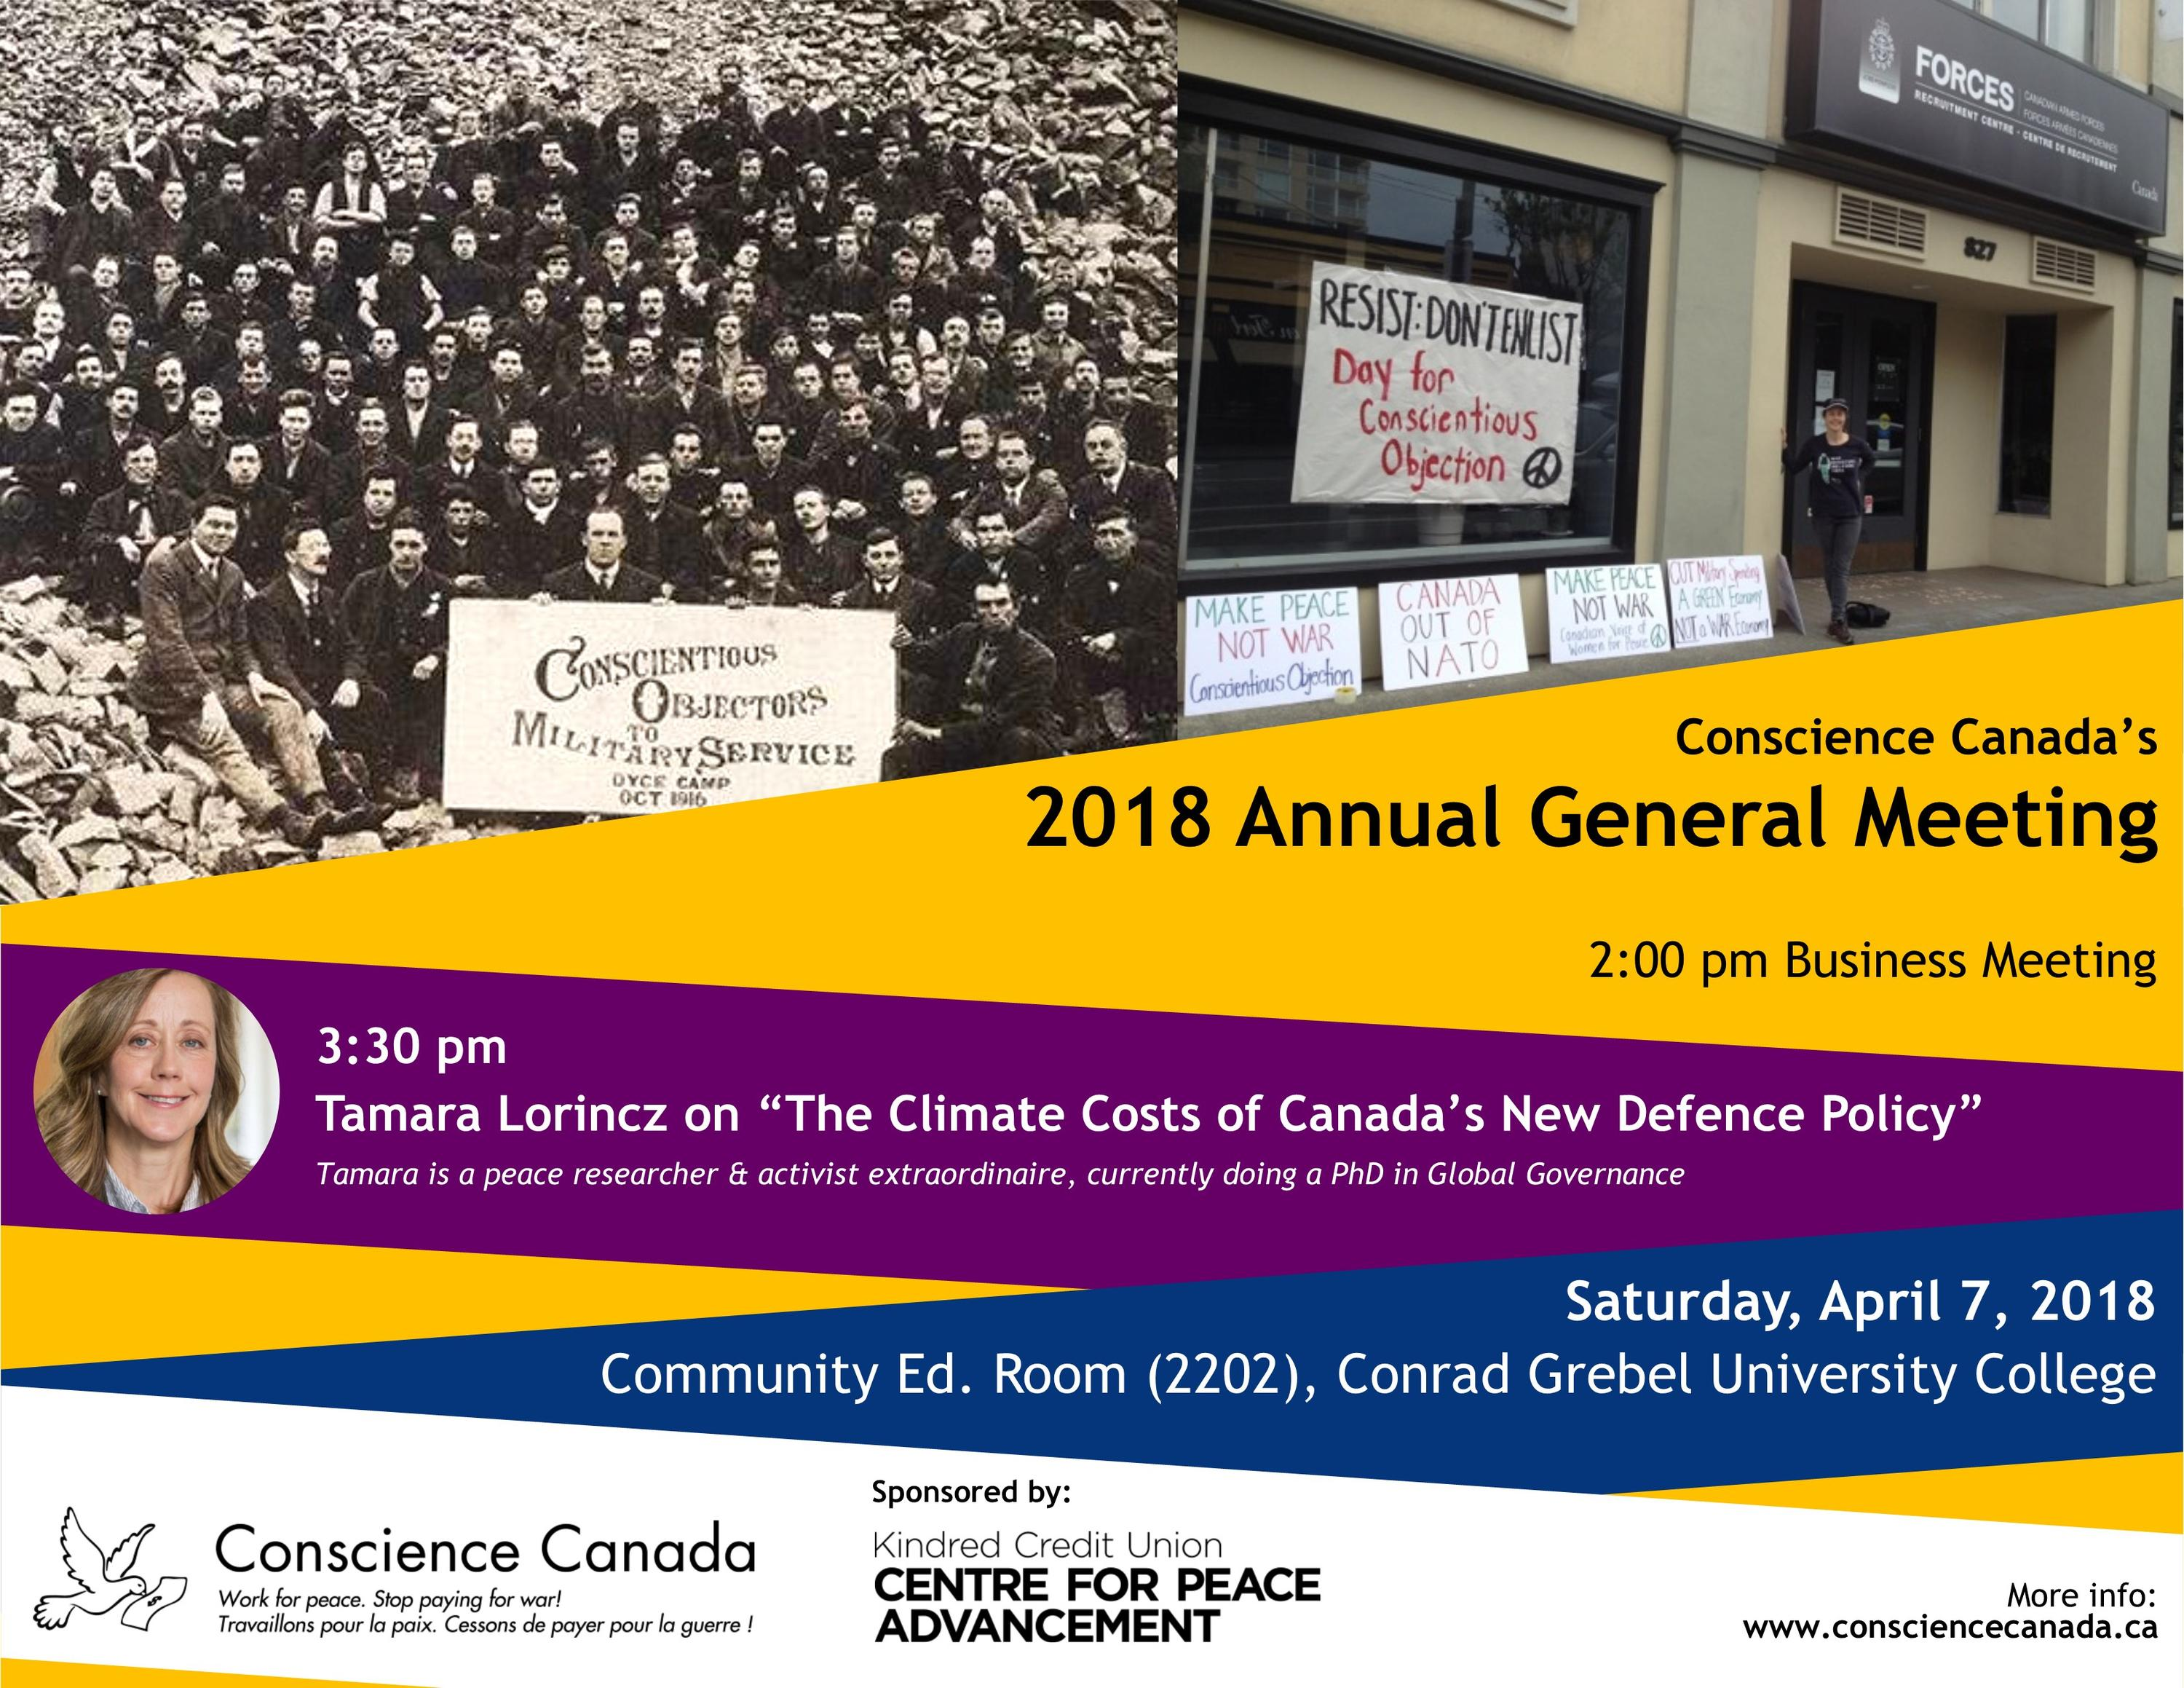 Conscience Canada's 2018 AGM publication